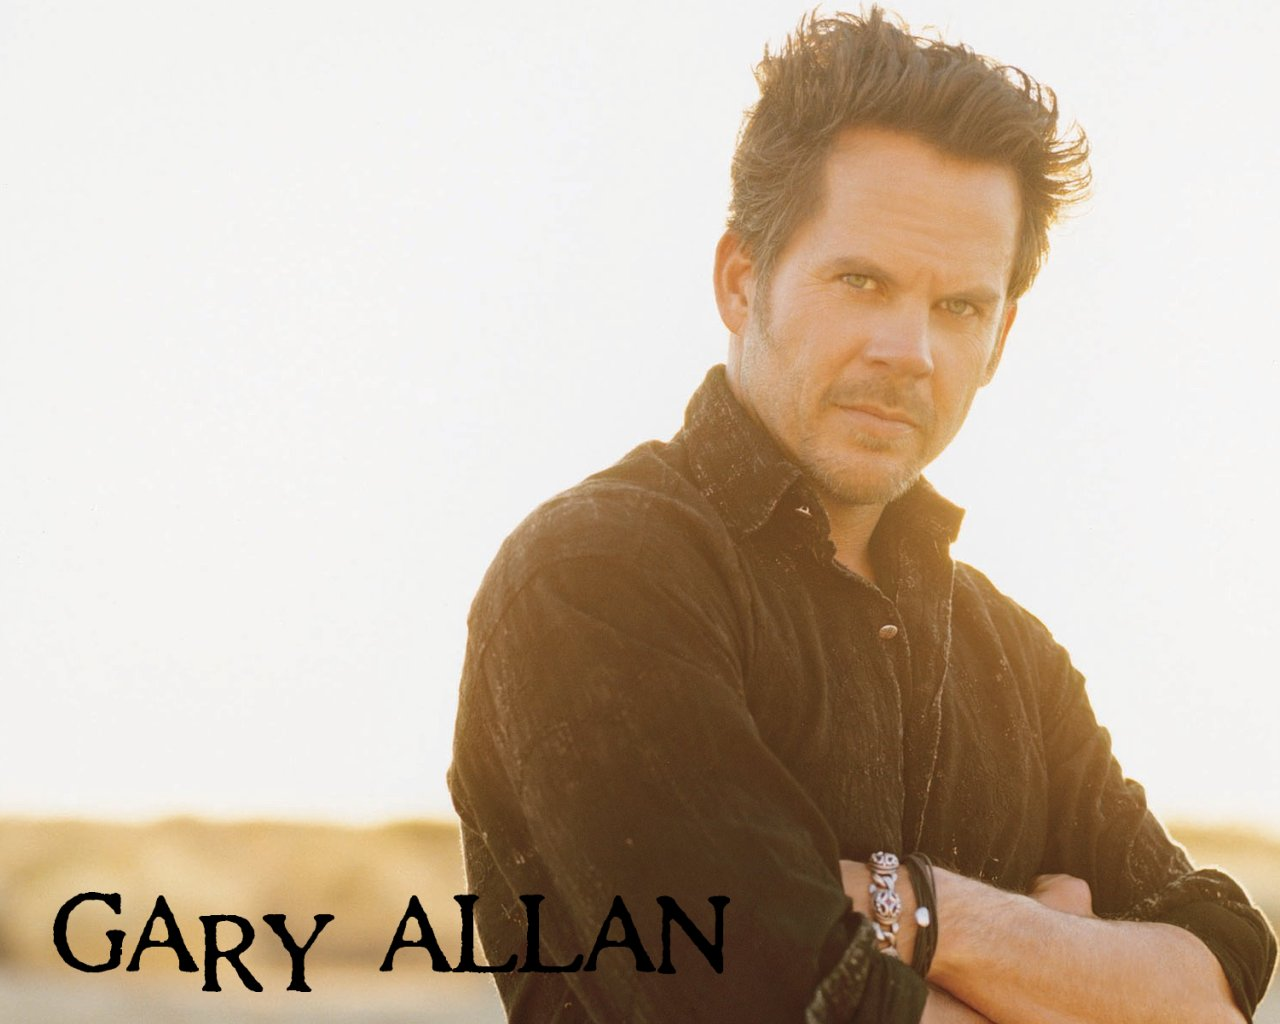 Gary Allan Net Worth